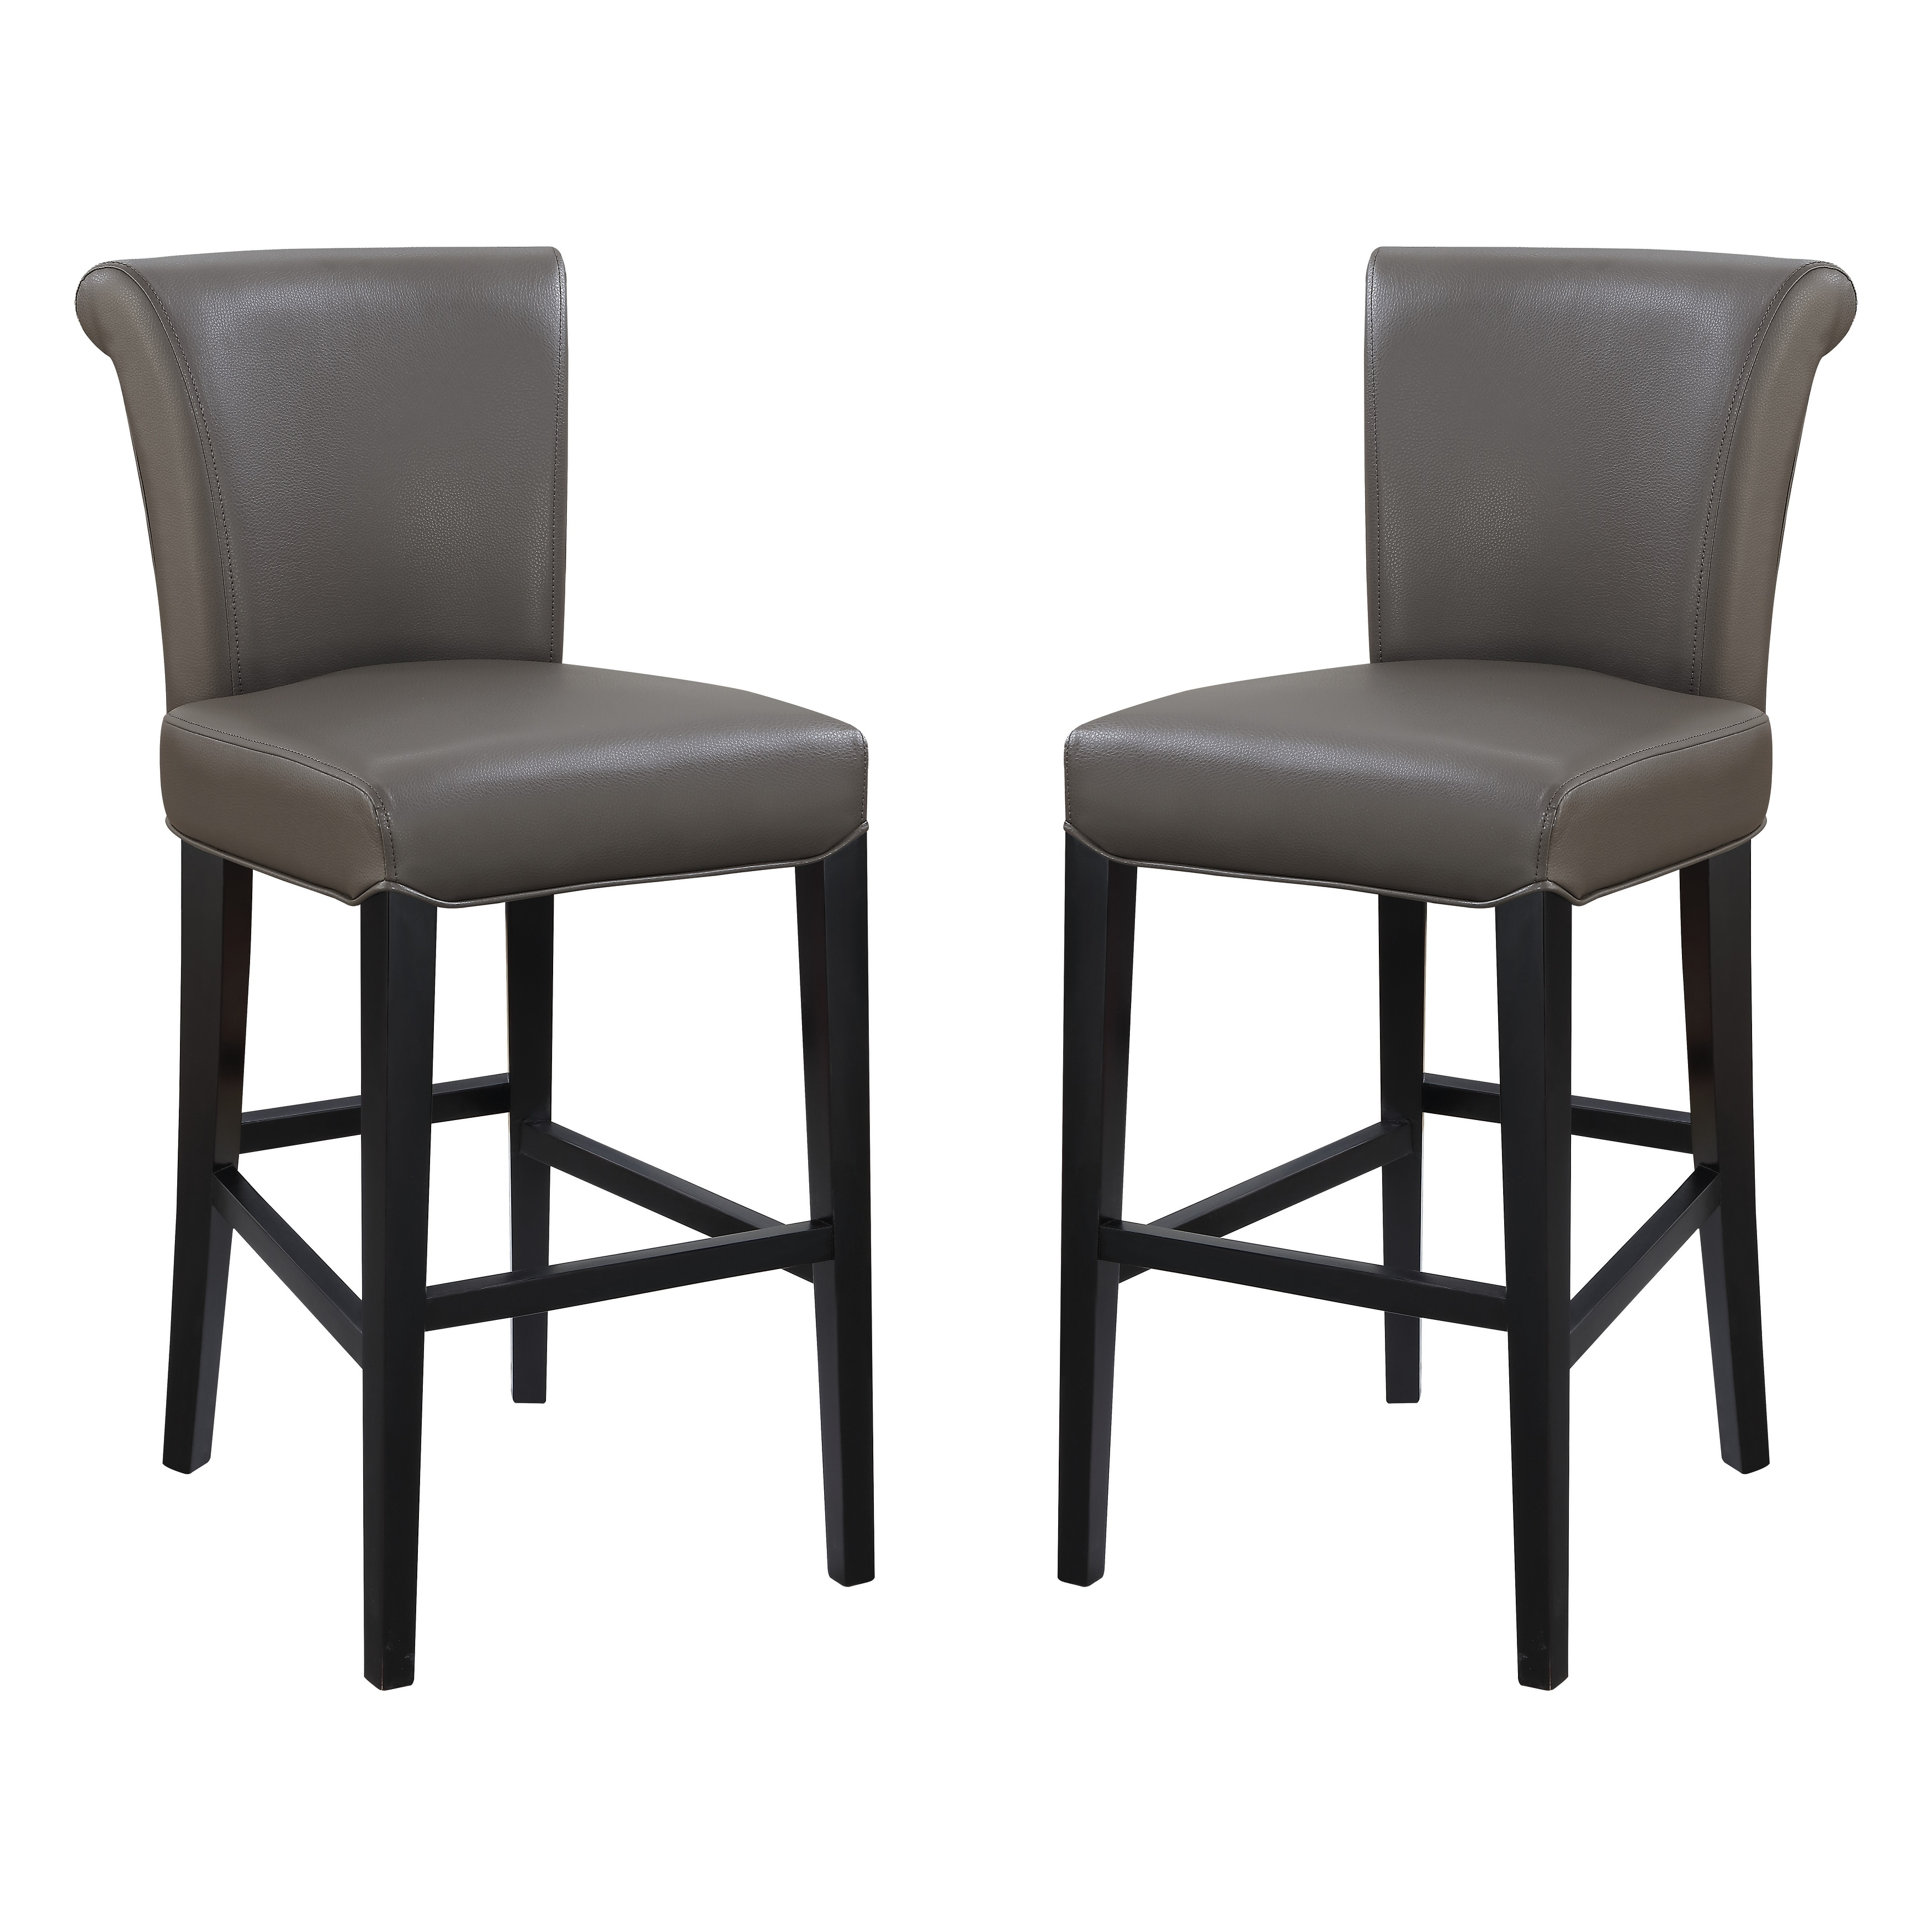 Copper Grove Fenua 30 Inch Faux Leather Curved Back Bar Stools Set Of 2 On Sale Overstock 20351578